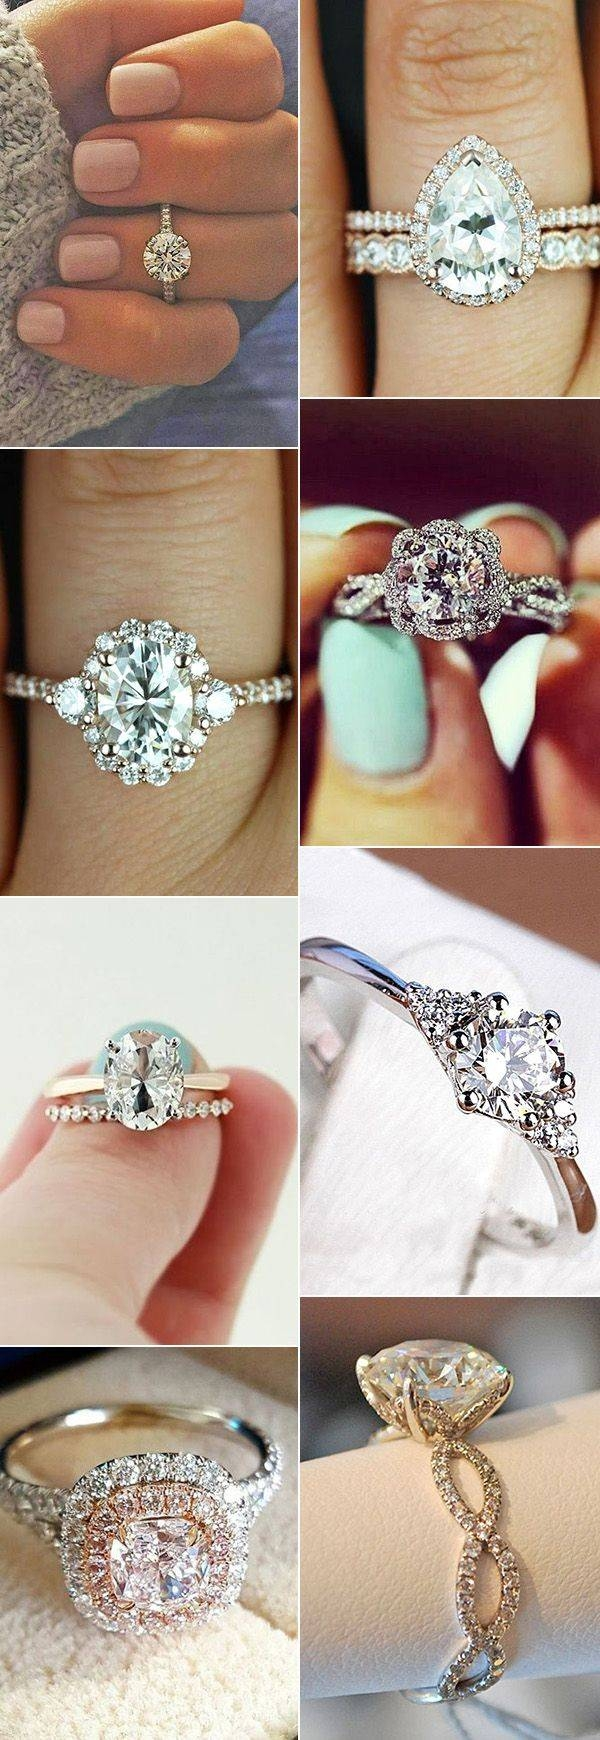 Best 25+ Country Engagement Rings Ideas On Pinterest | Country Pertaining To Country Engagement Rings (View 14 of 15)